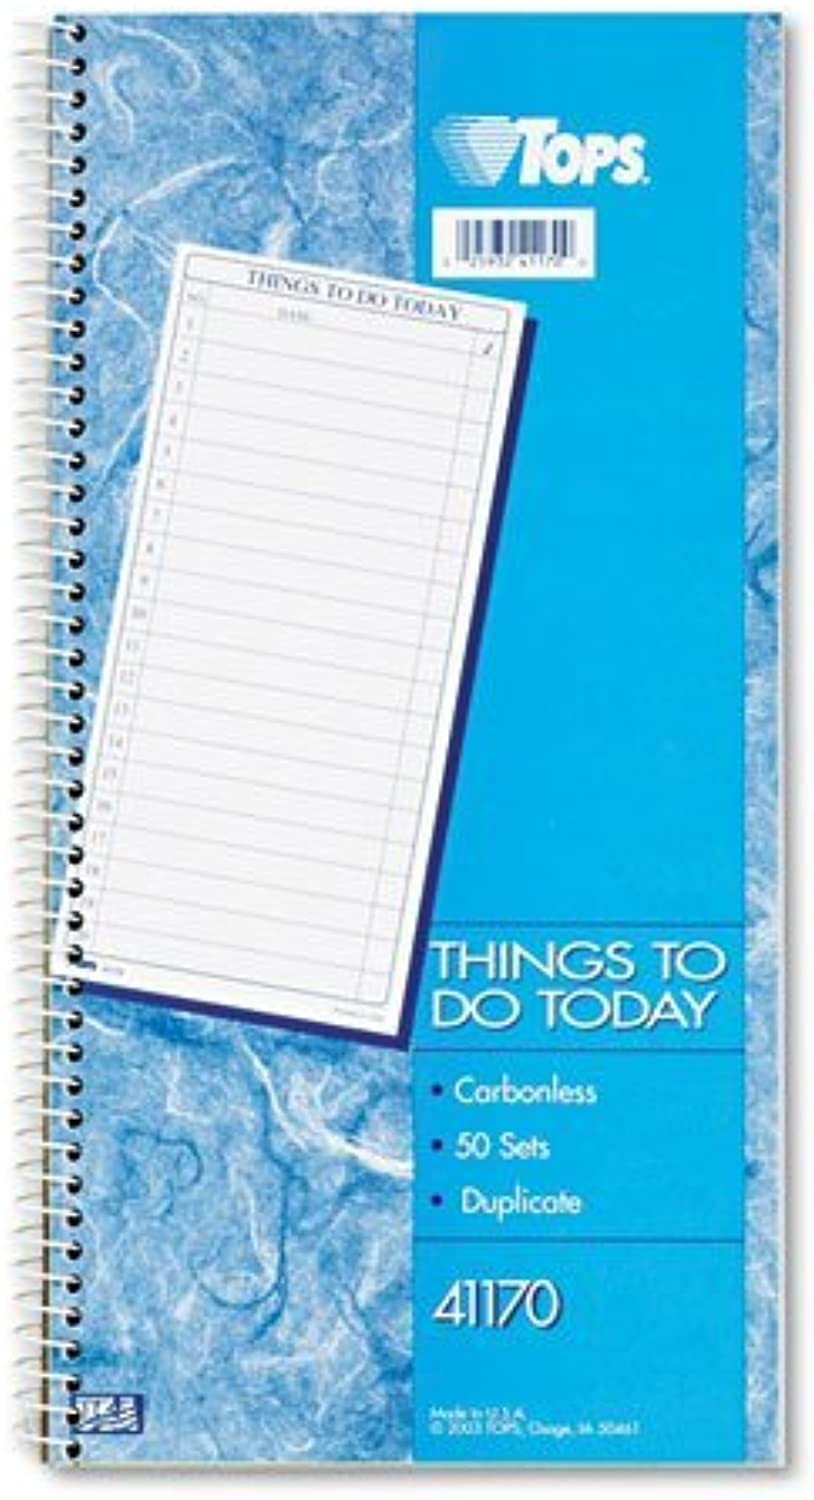 TOPS Products - TOPS -   Things To Do   Spiral Daily Agenda Book, 5-1 2 x 11, 2-Part Carbonless, 50 Pad - Sold As 1 PD - Check-off boxes to indicate task has been completed. - Remove original, keep follow-up copy in book as permanent record. - Four ruled